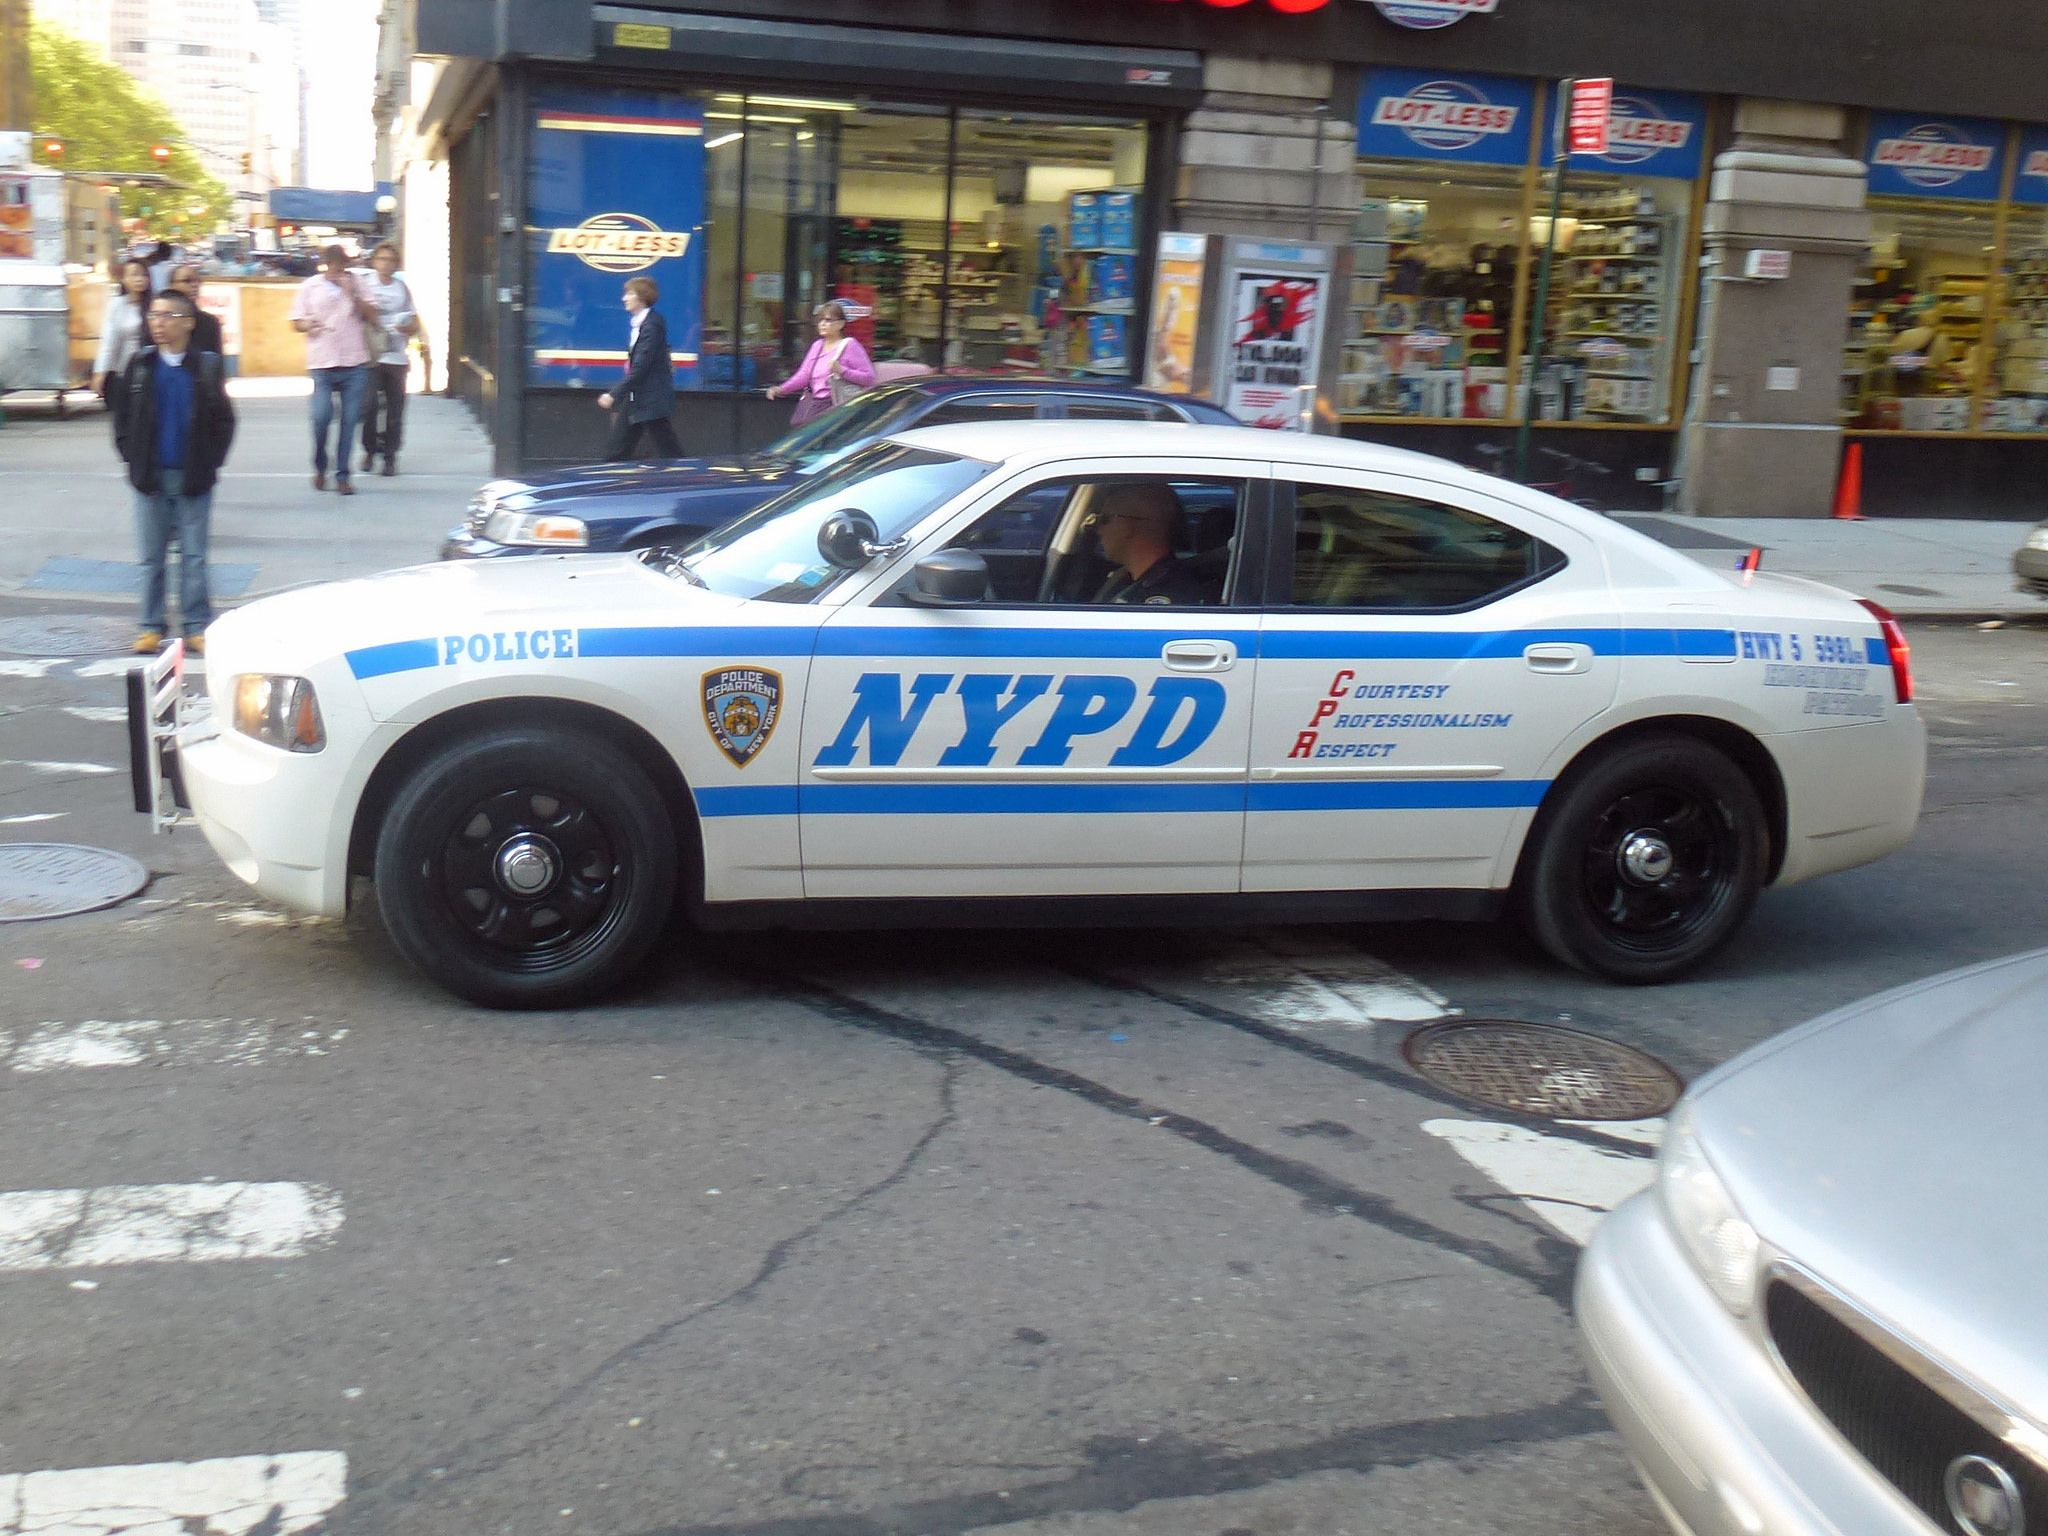 Nypd Hwy 5 5981 Nypd Emergency Vehicles Old Police Cars